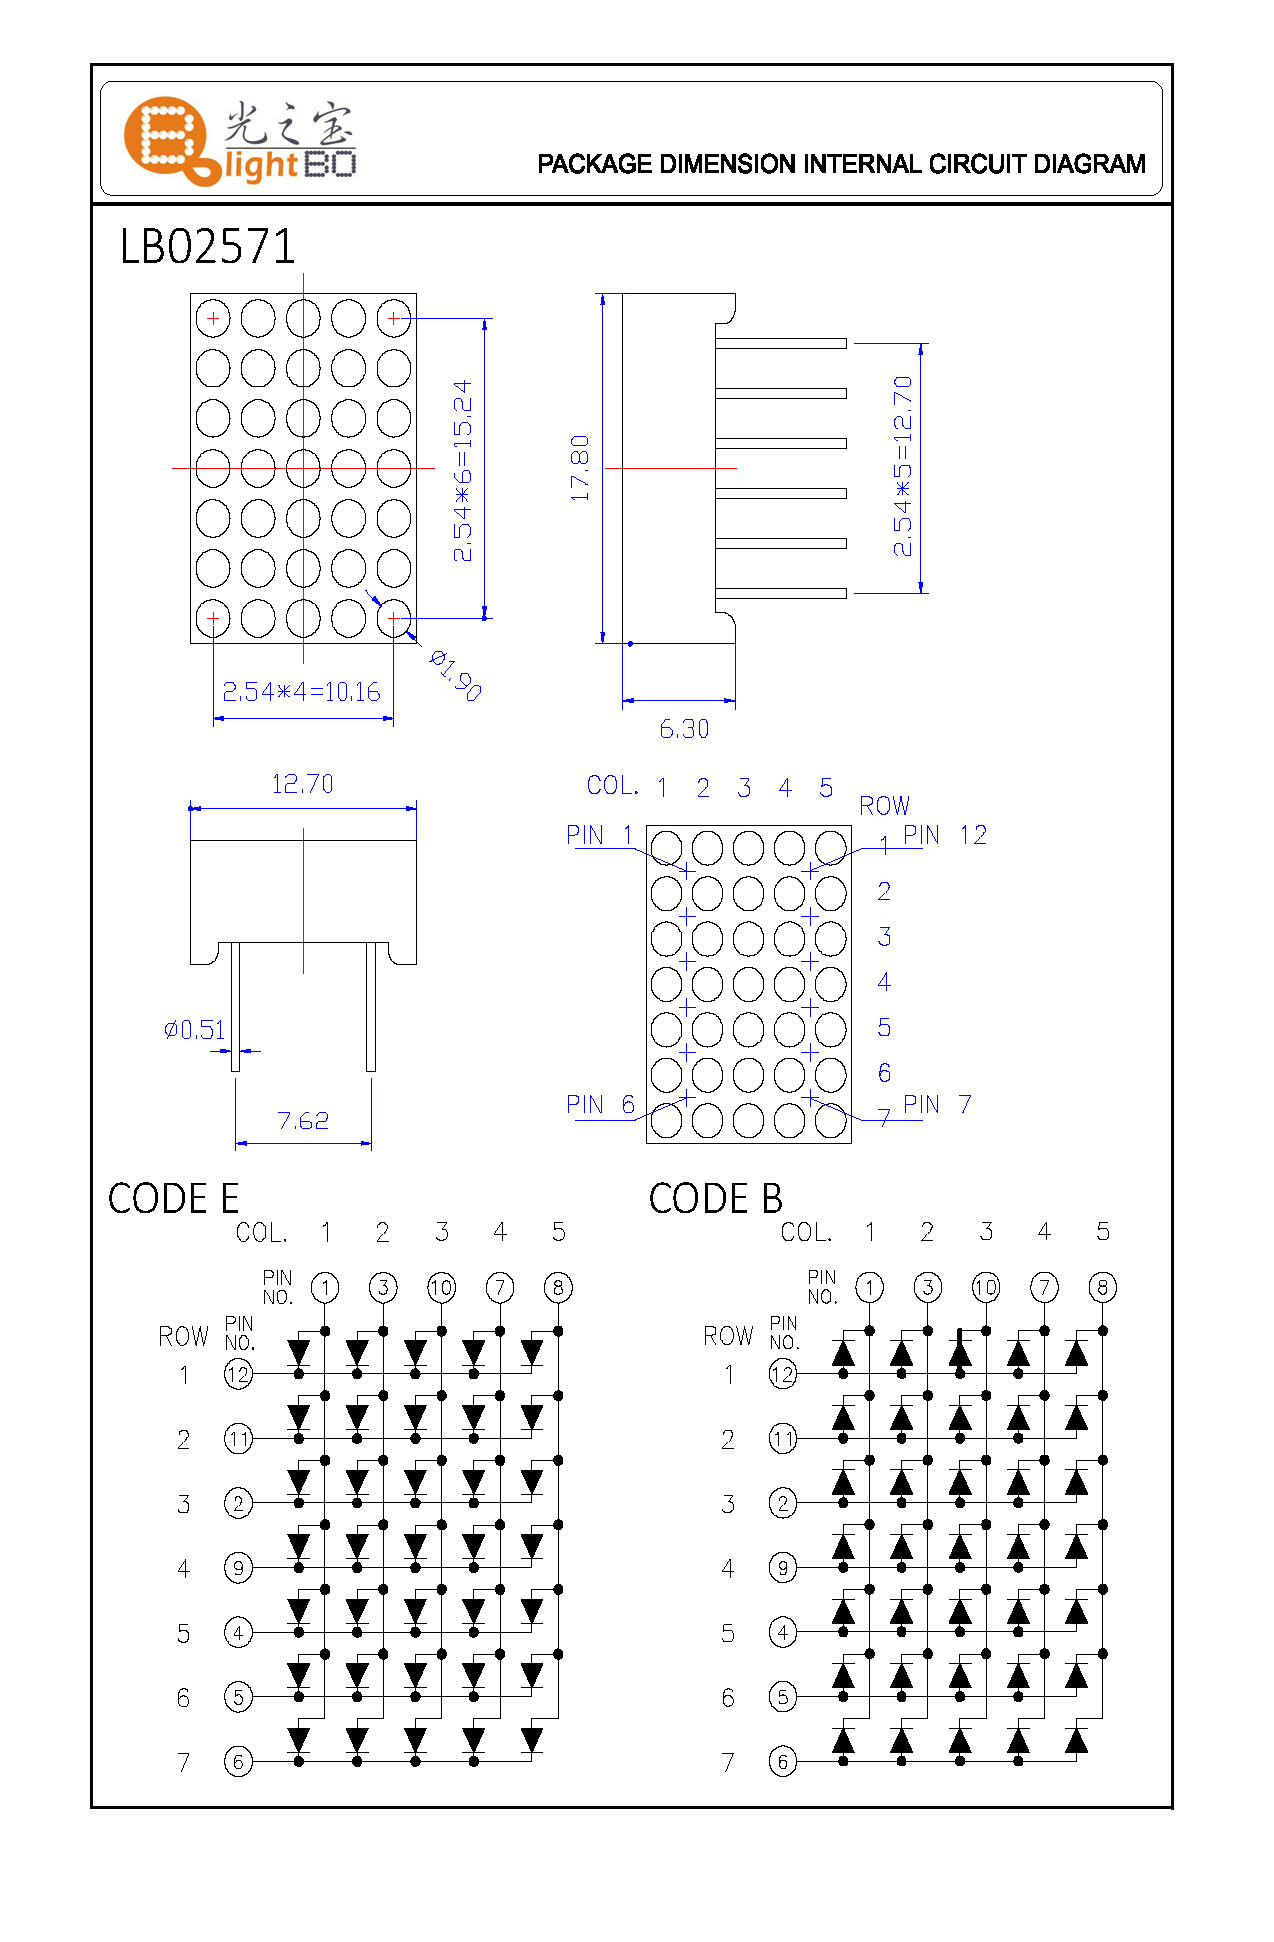 ultra white 0 7 inch 5 x 7 dot matrix led display for fan control manufacturers and suppliers in